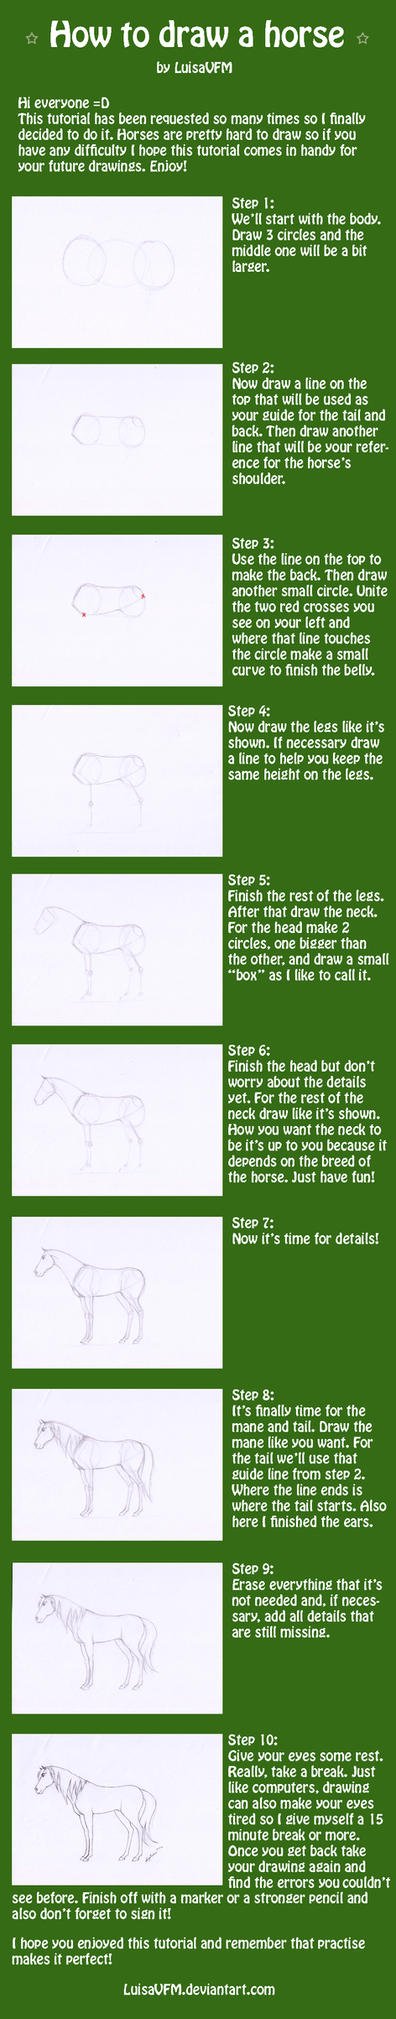 Tutorial: How to draw a horse by LuisaVFM